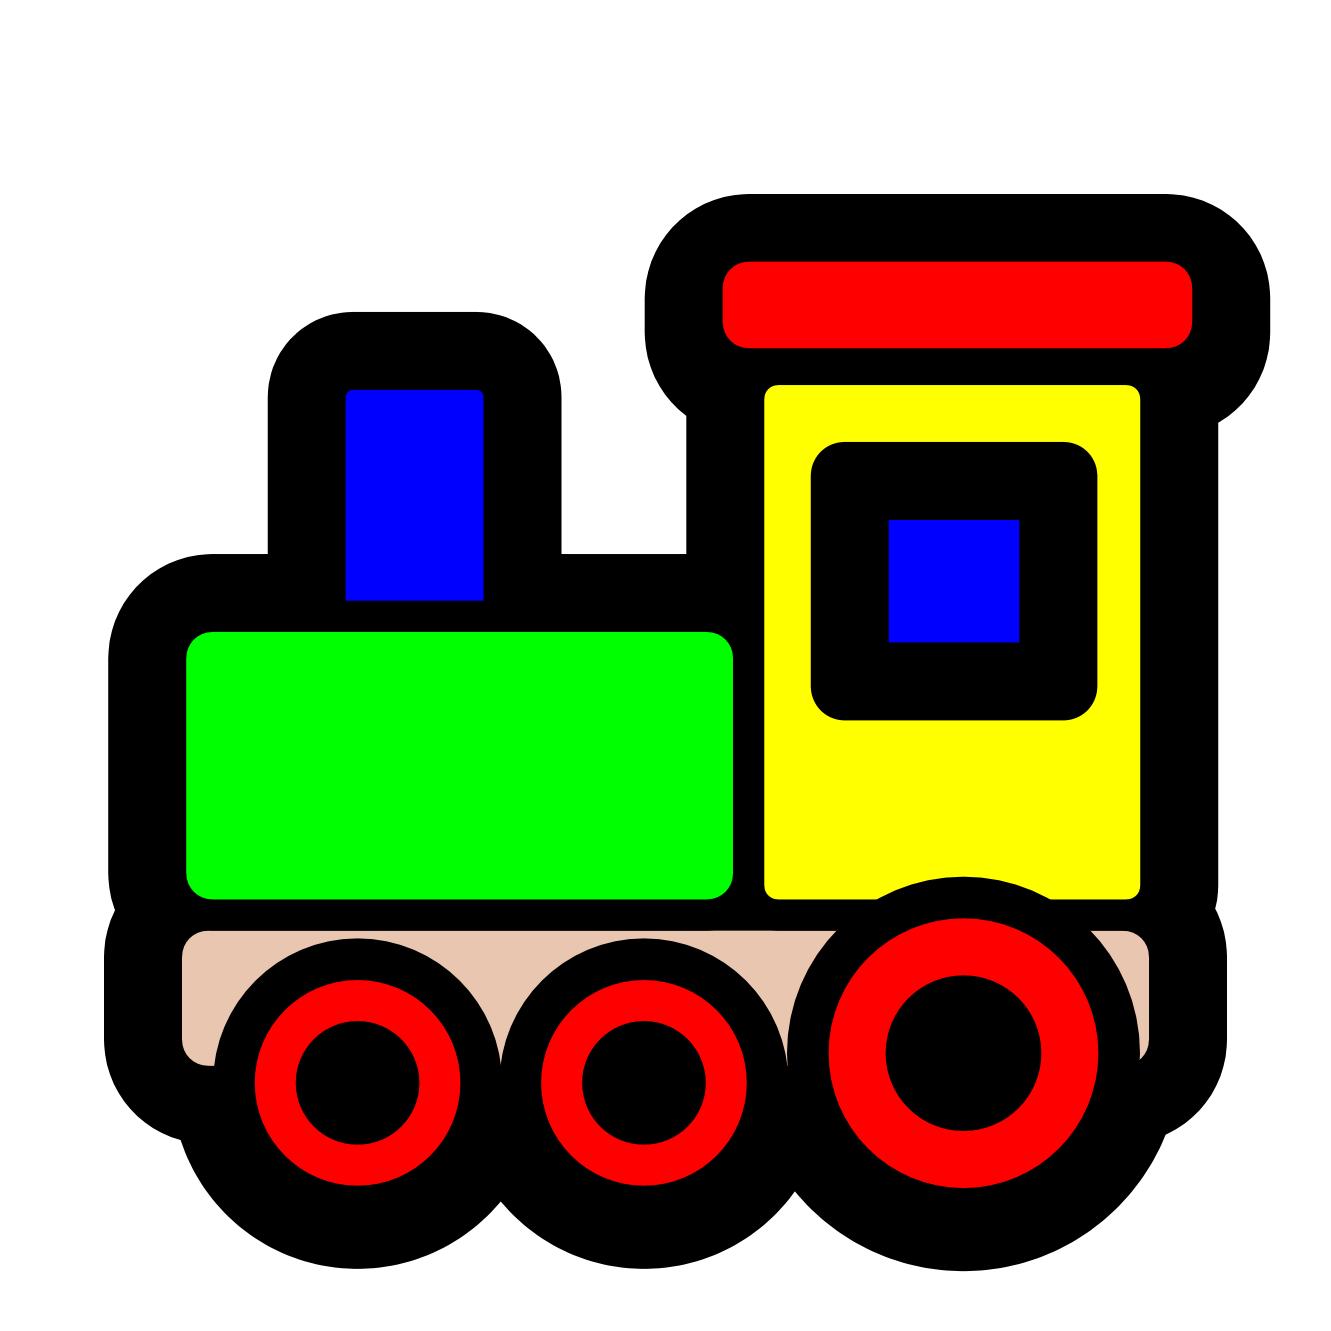 pitr toy train icon SVG